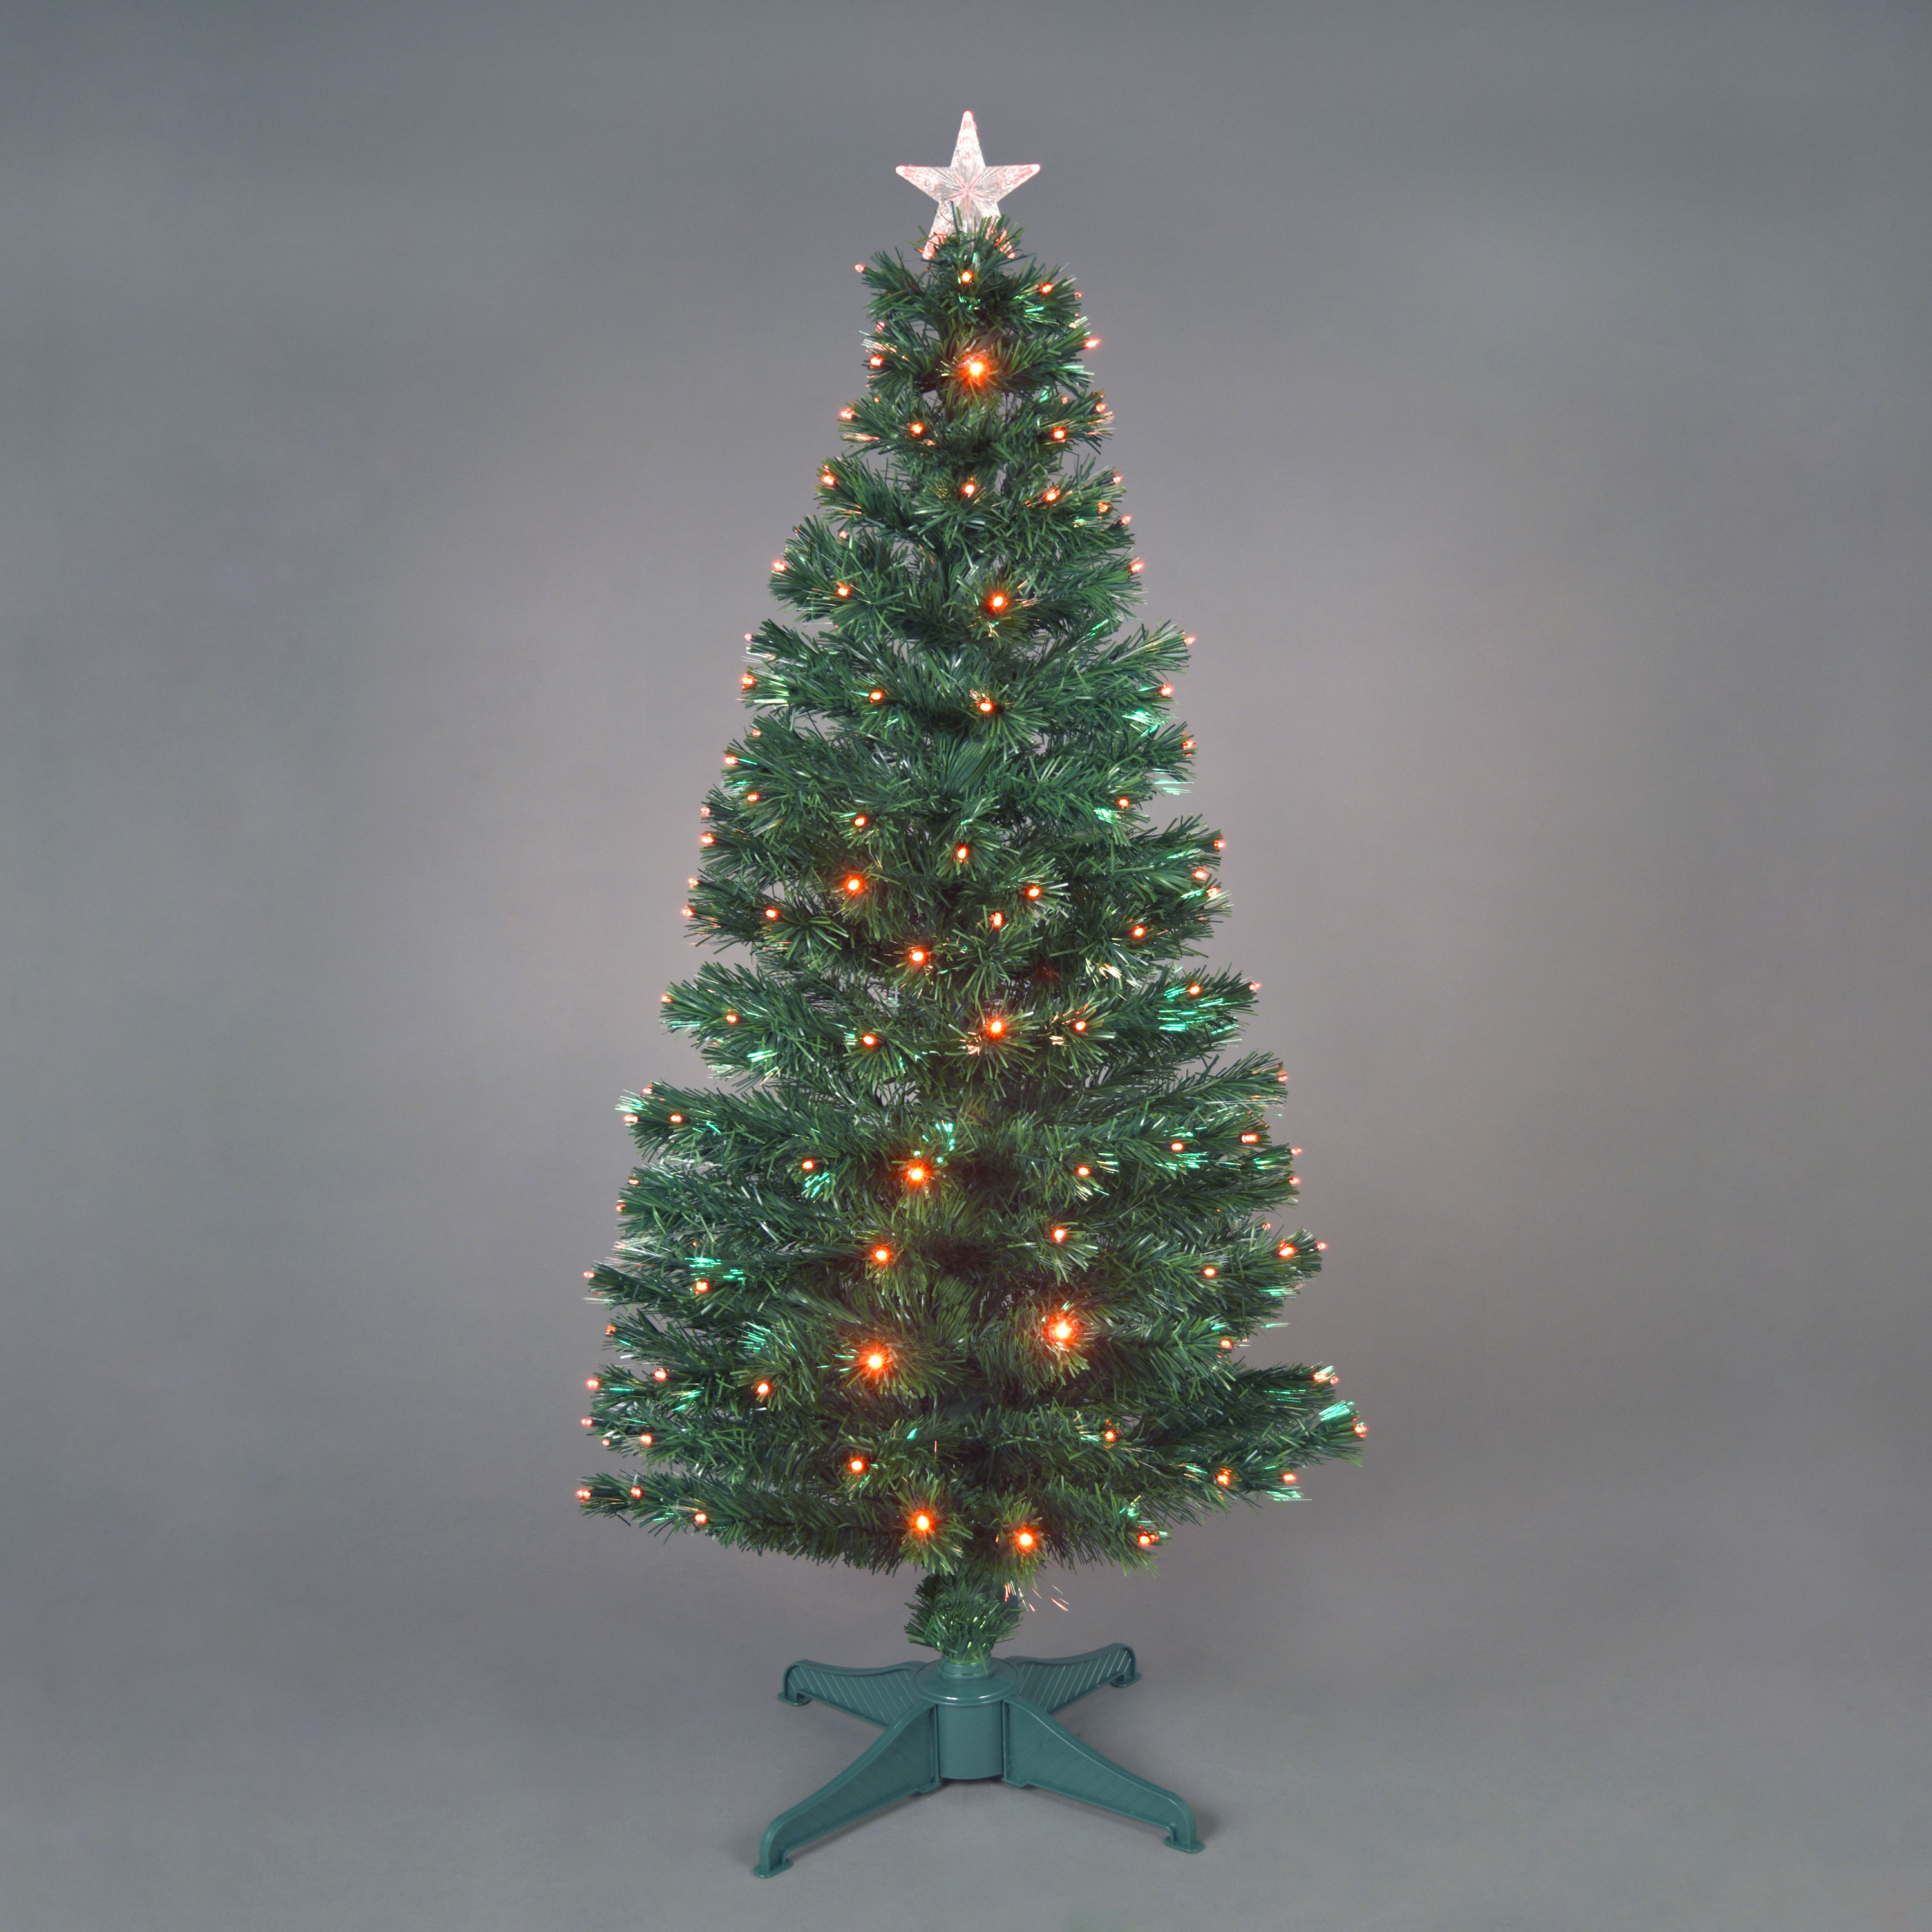 150cm5ft Red Saturn Fibre Optic Christmas Tree with 180 LEDs